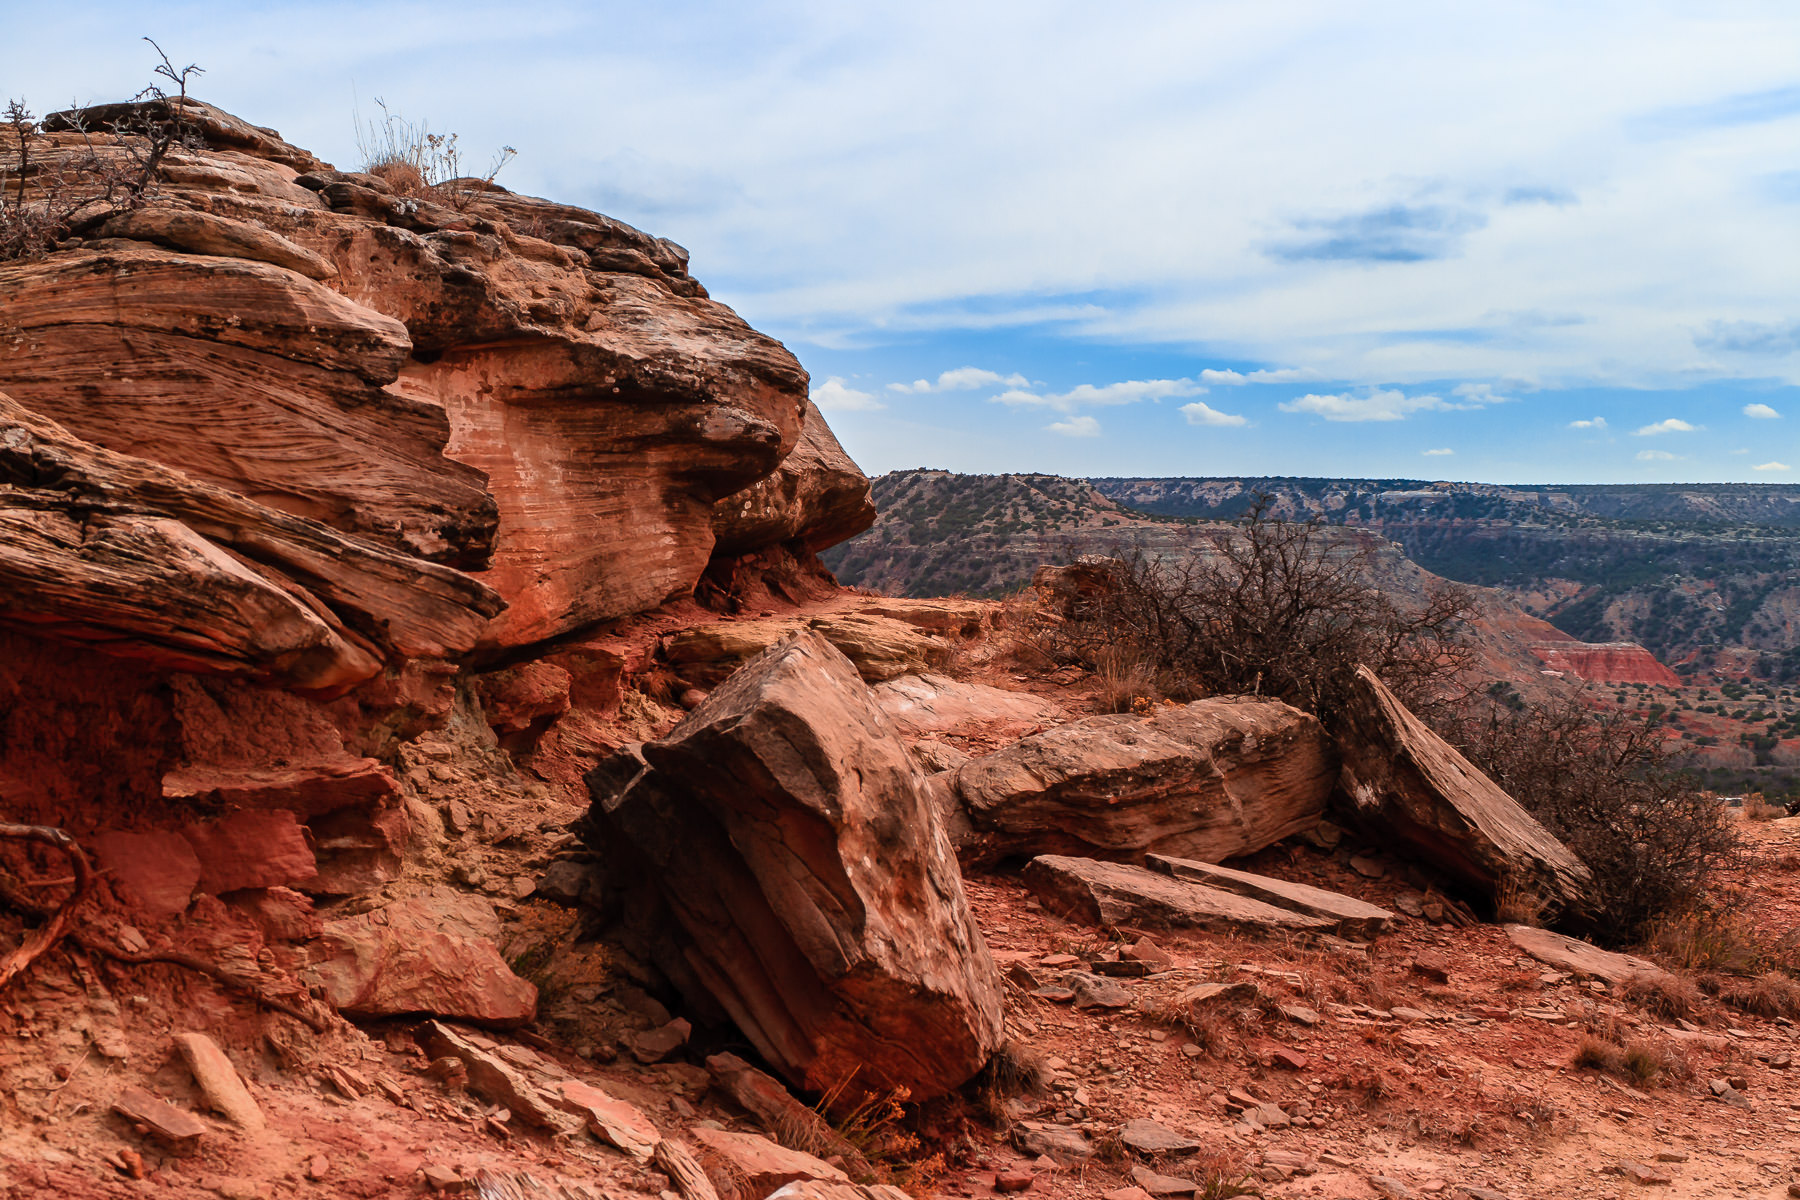 A pile of rocks on the rim of Texas' Palo Duro Canyon.